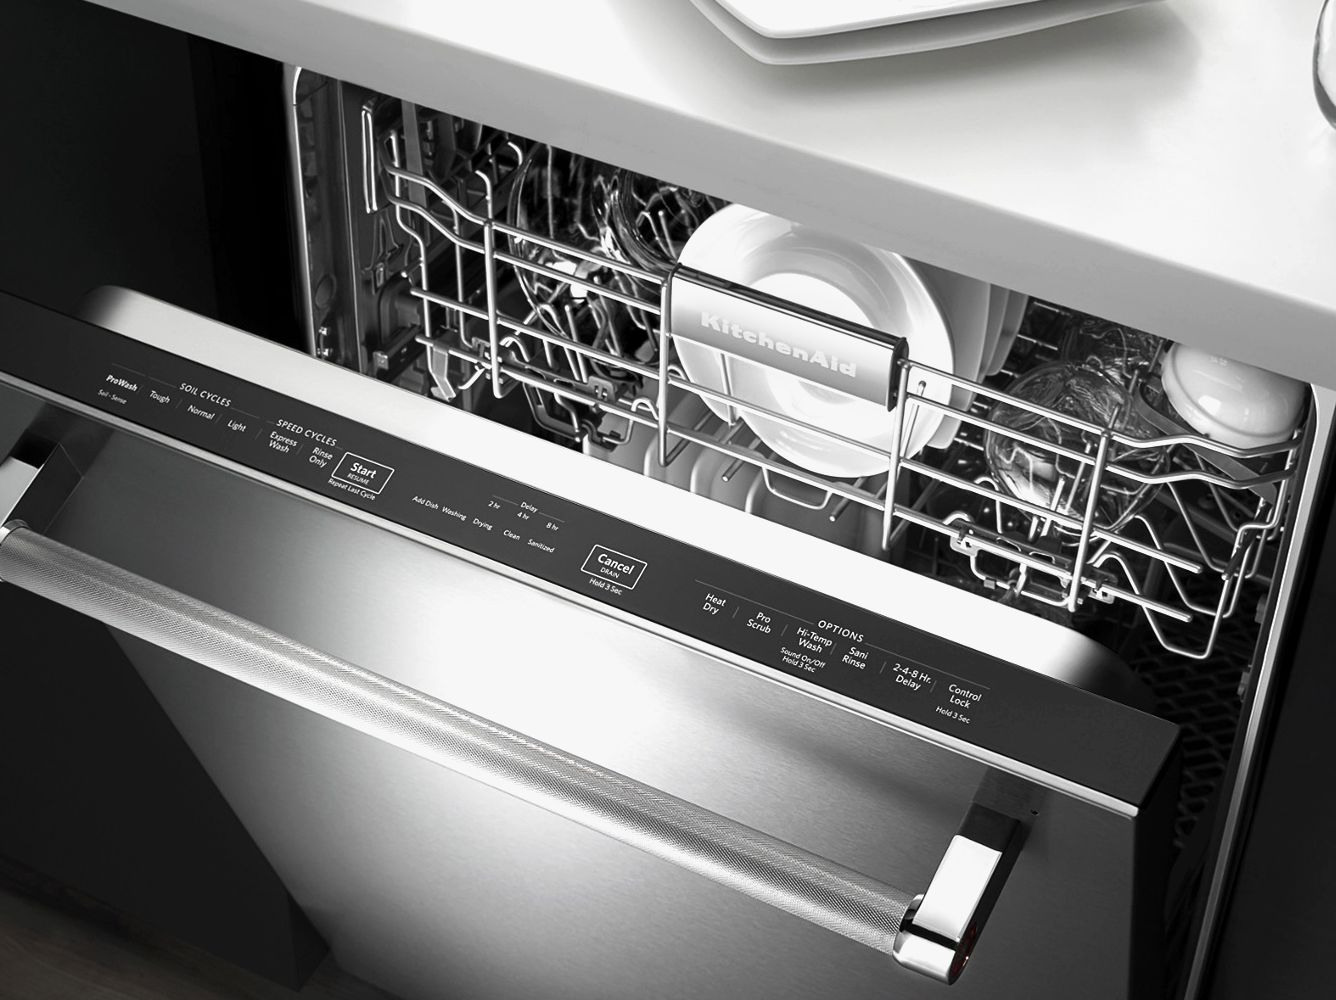 10 Best Dishwashers For 2019 Top Rated Dishwasher Reviews Brands